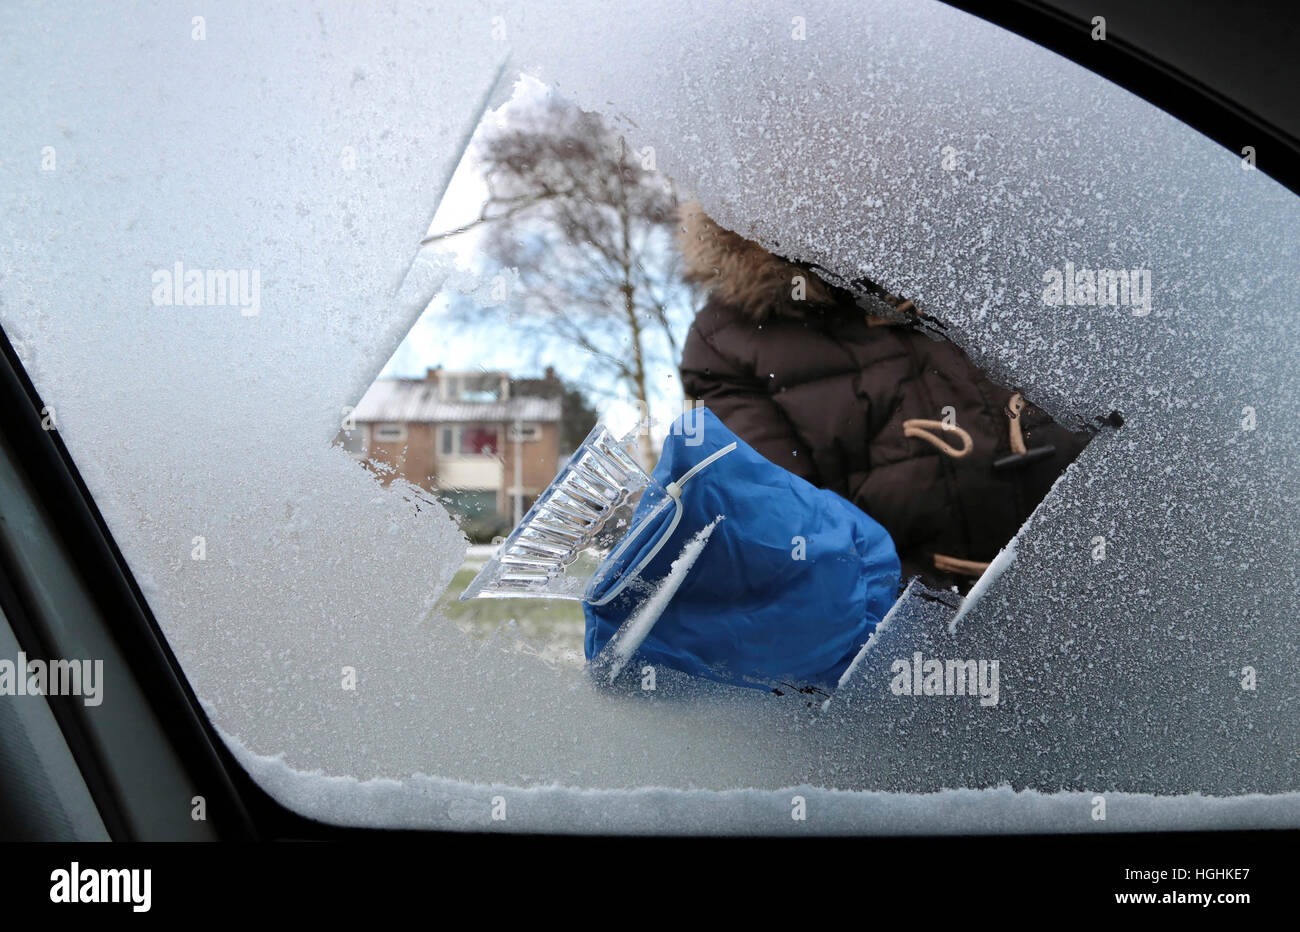 Woman removing ice and snow from a car window with a ice scraper - Stock Image